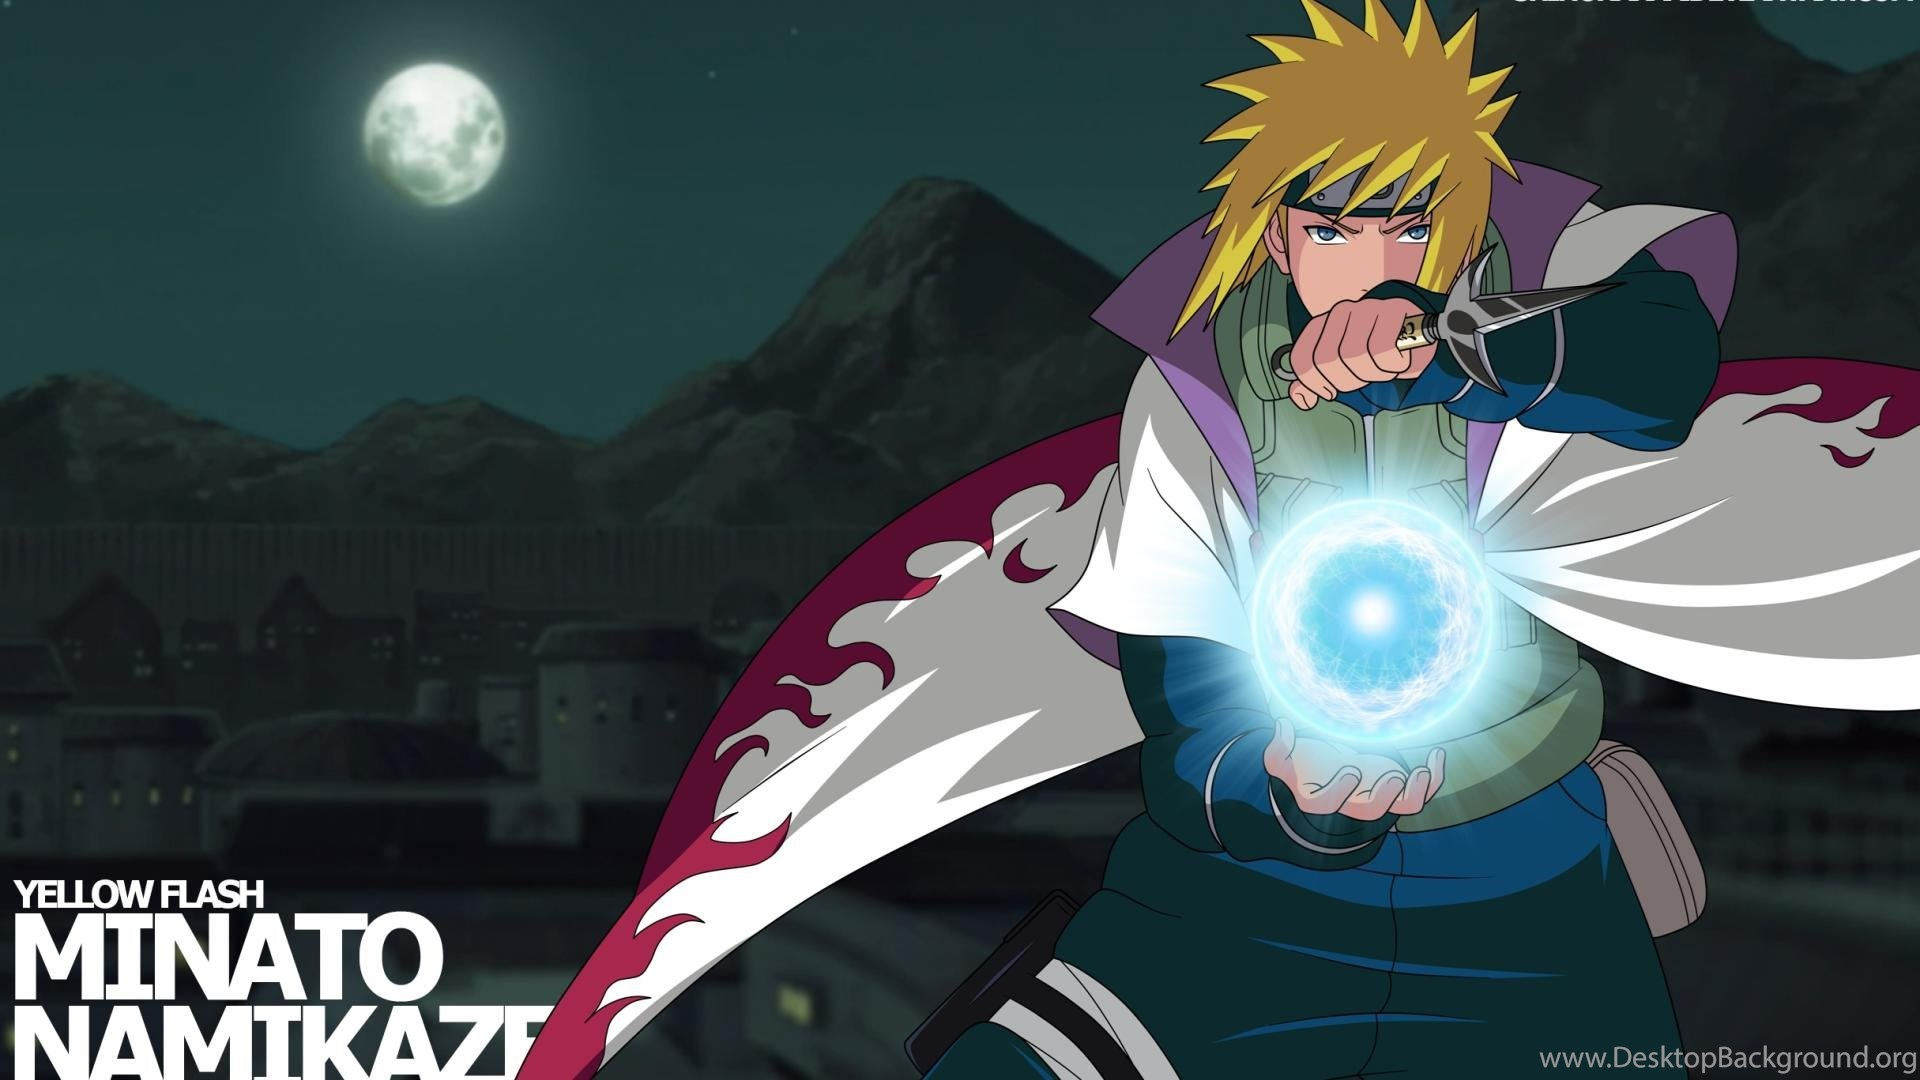 419512 minato namikaze yellow flash naruto anime 1920x1080 hd